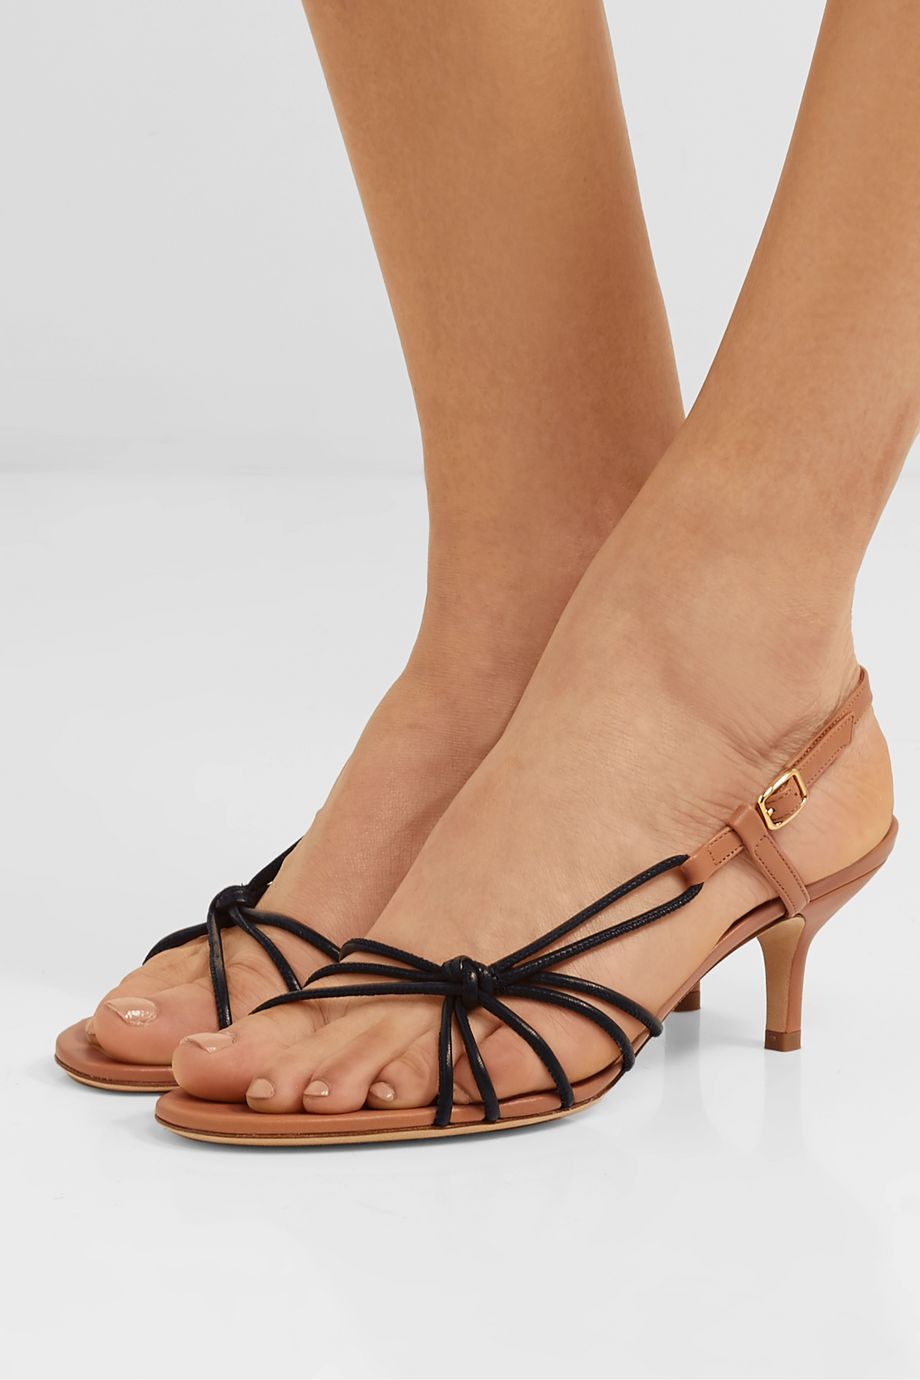 Malone Souliers Antwerp 45 two-tone knotted leather sandals